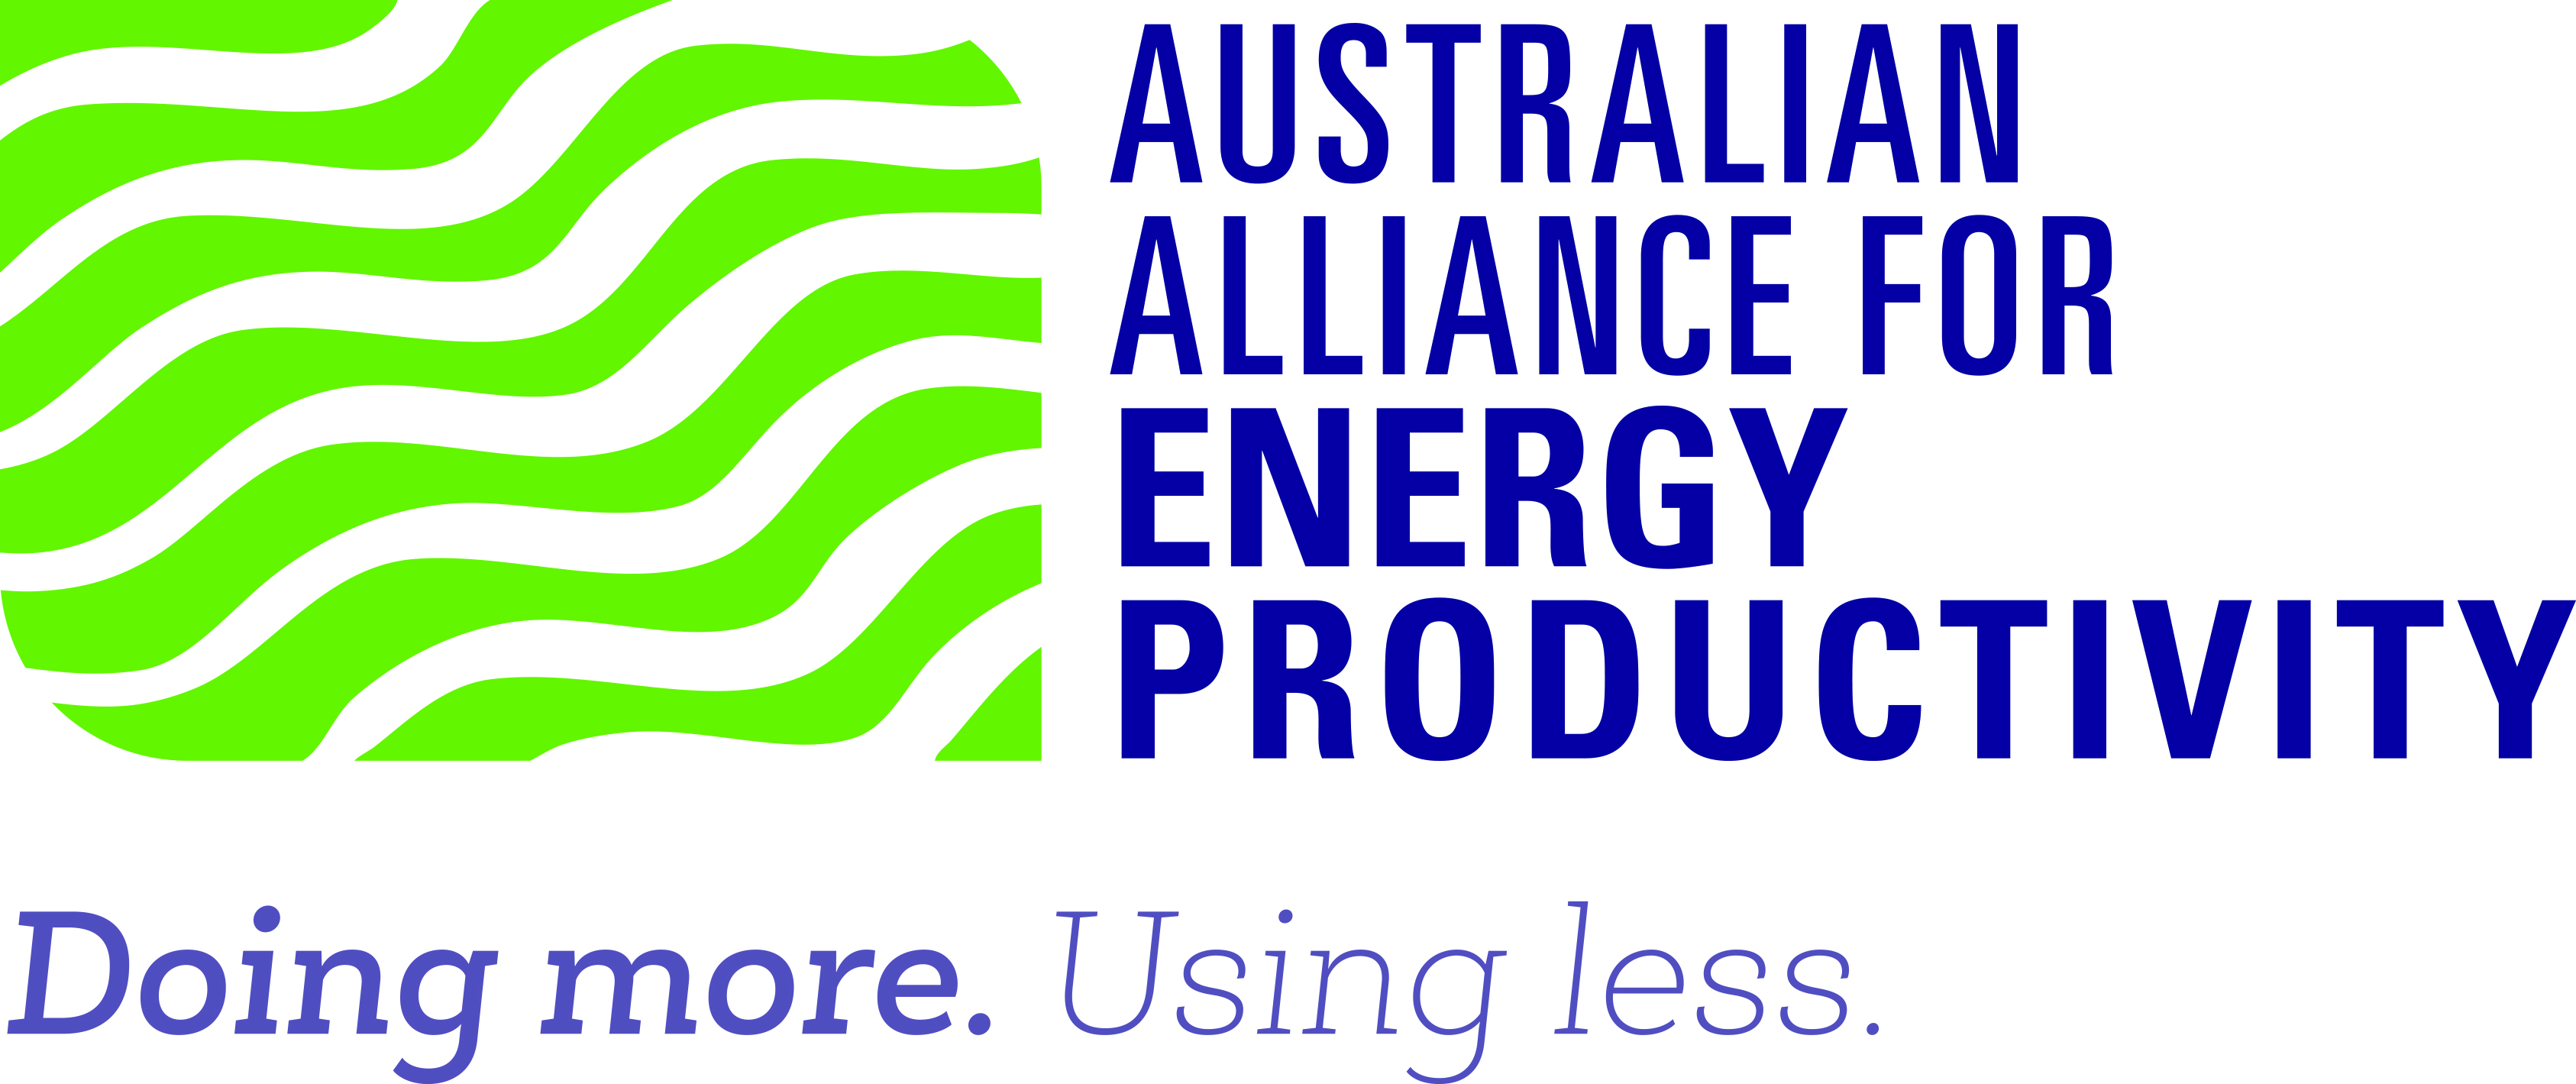 Australian Alliance for Energy Productivity